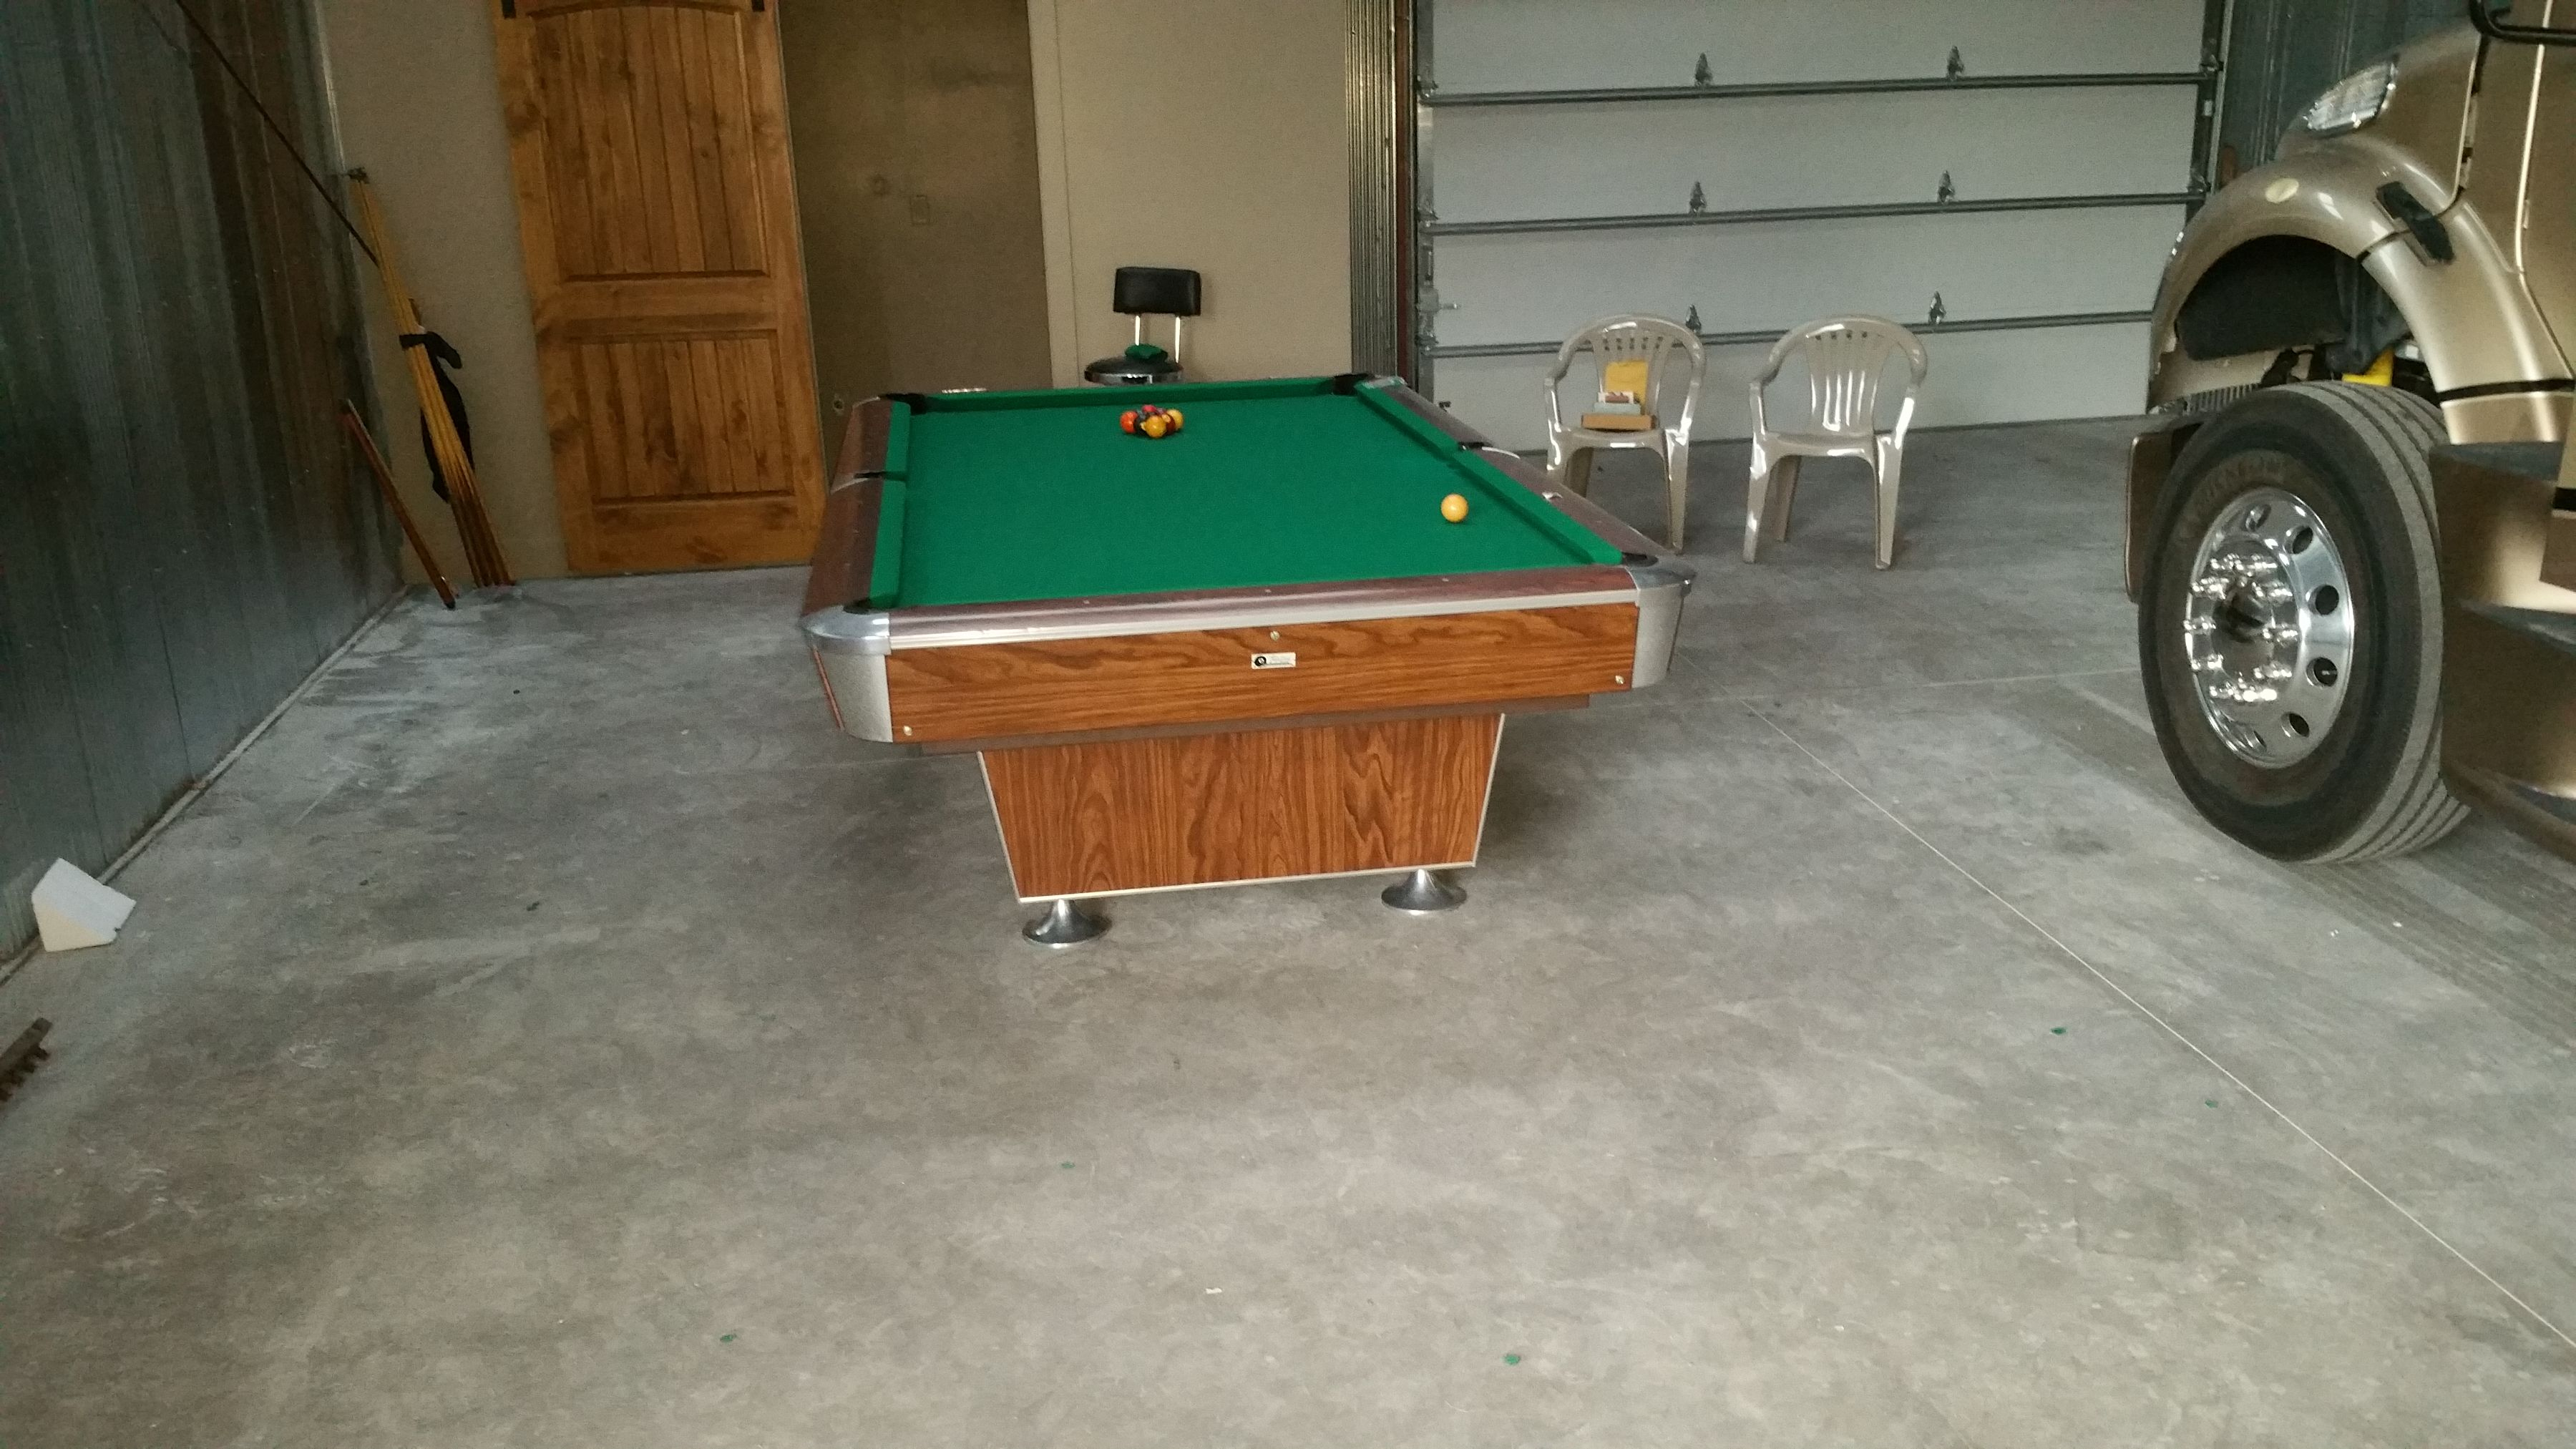 We Installed A Top Line Pool Table In A Very Nice Garage - Pool table in garage